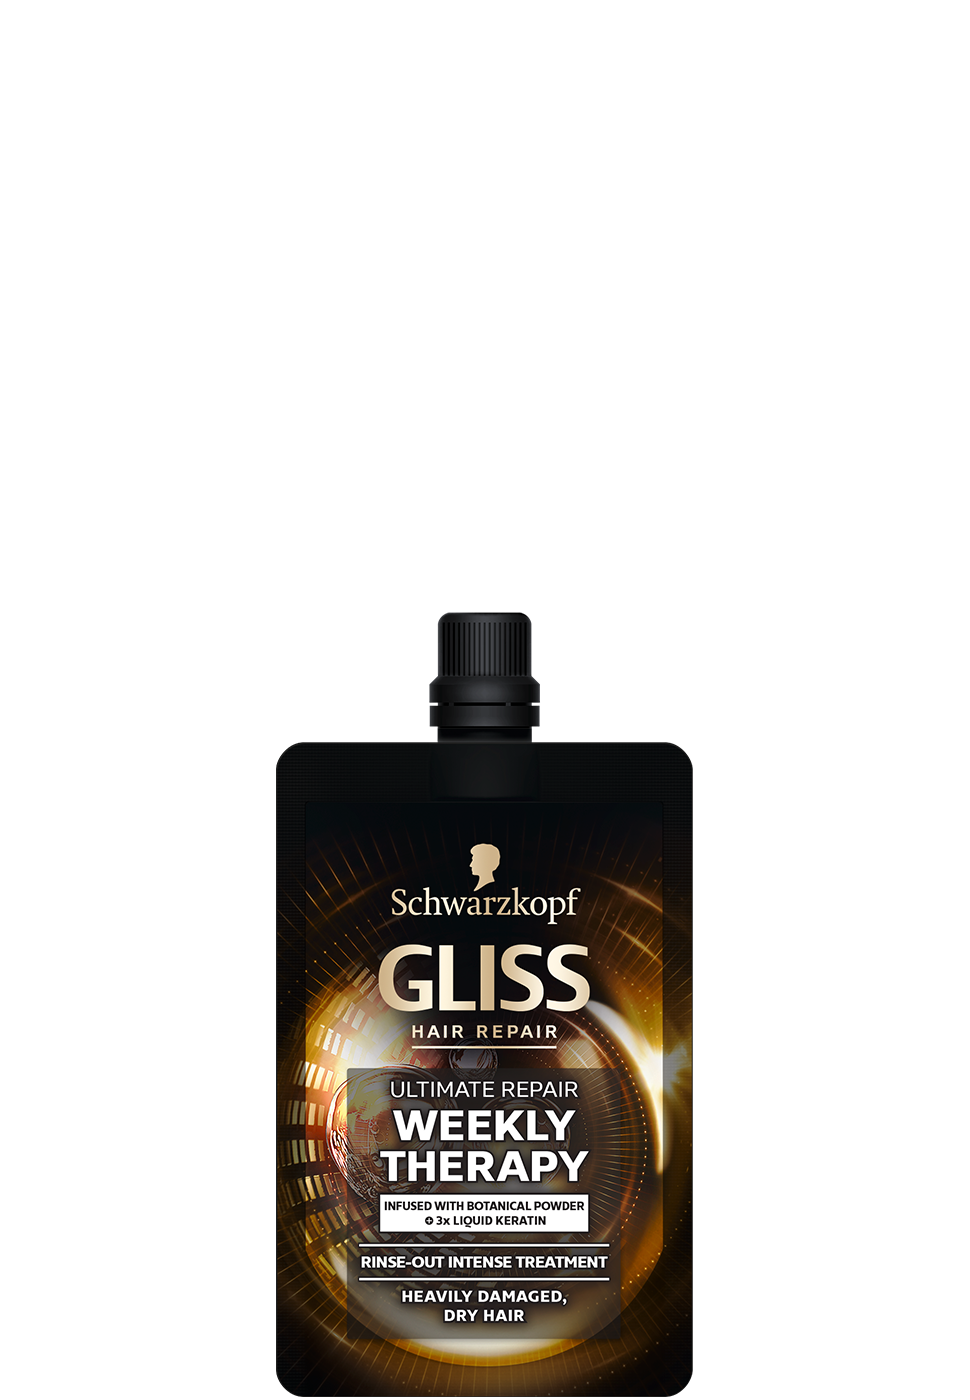 glisskur_com_supreme_length_weekly_therapy_970x1400HR